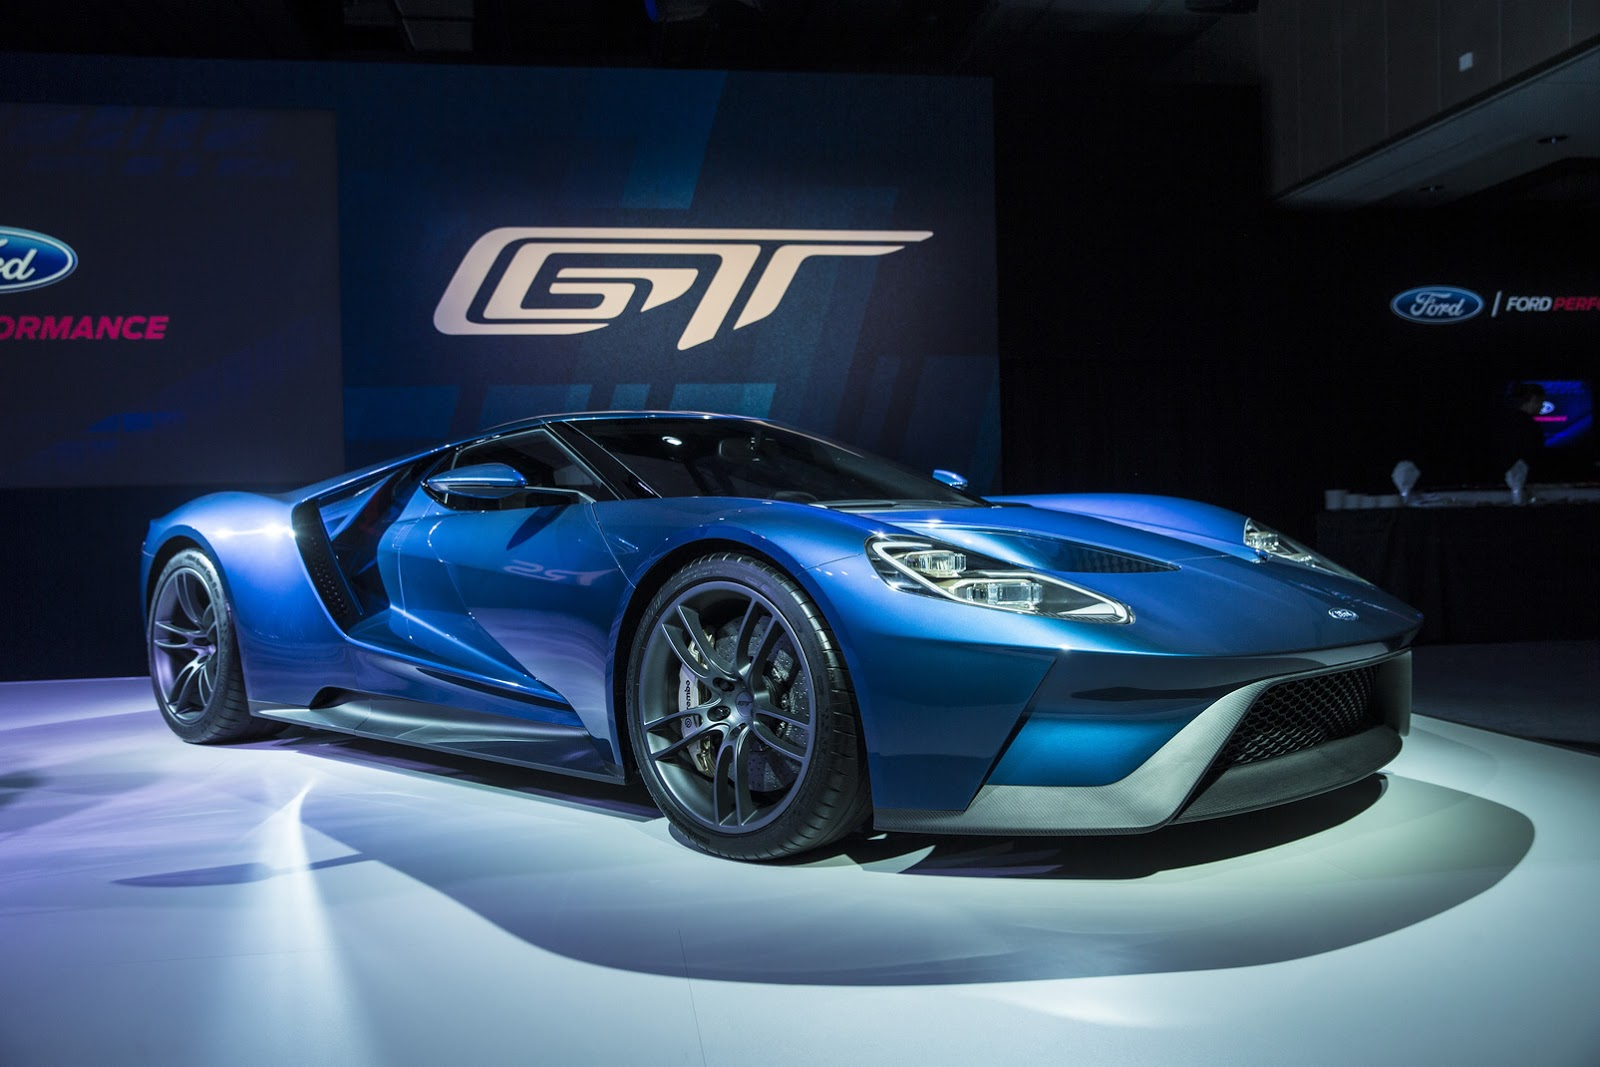 2016 ford gt 39 s annual production limited to 250 units priced against the aventador carscoops. Black Bedroom Furniture Sets. Home Design Ideas